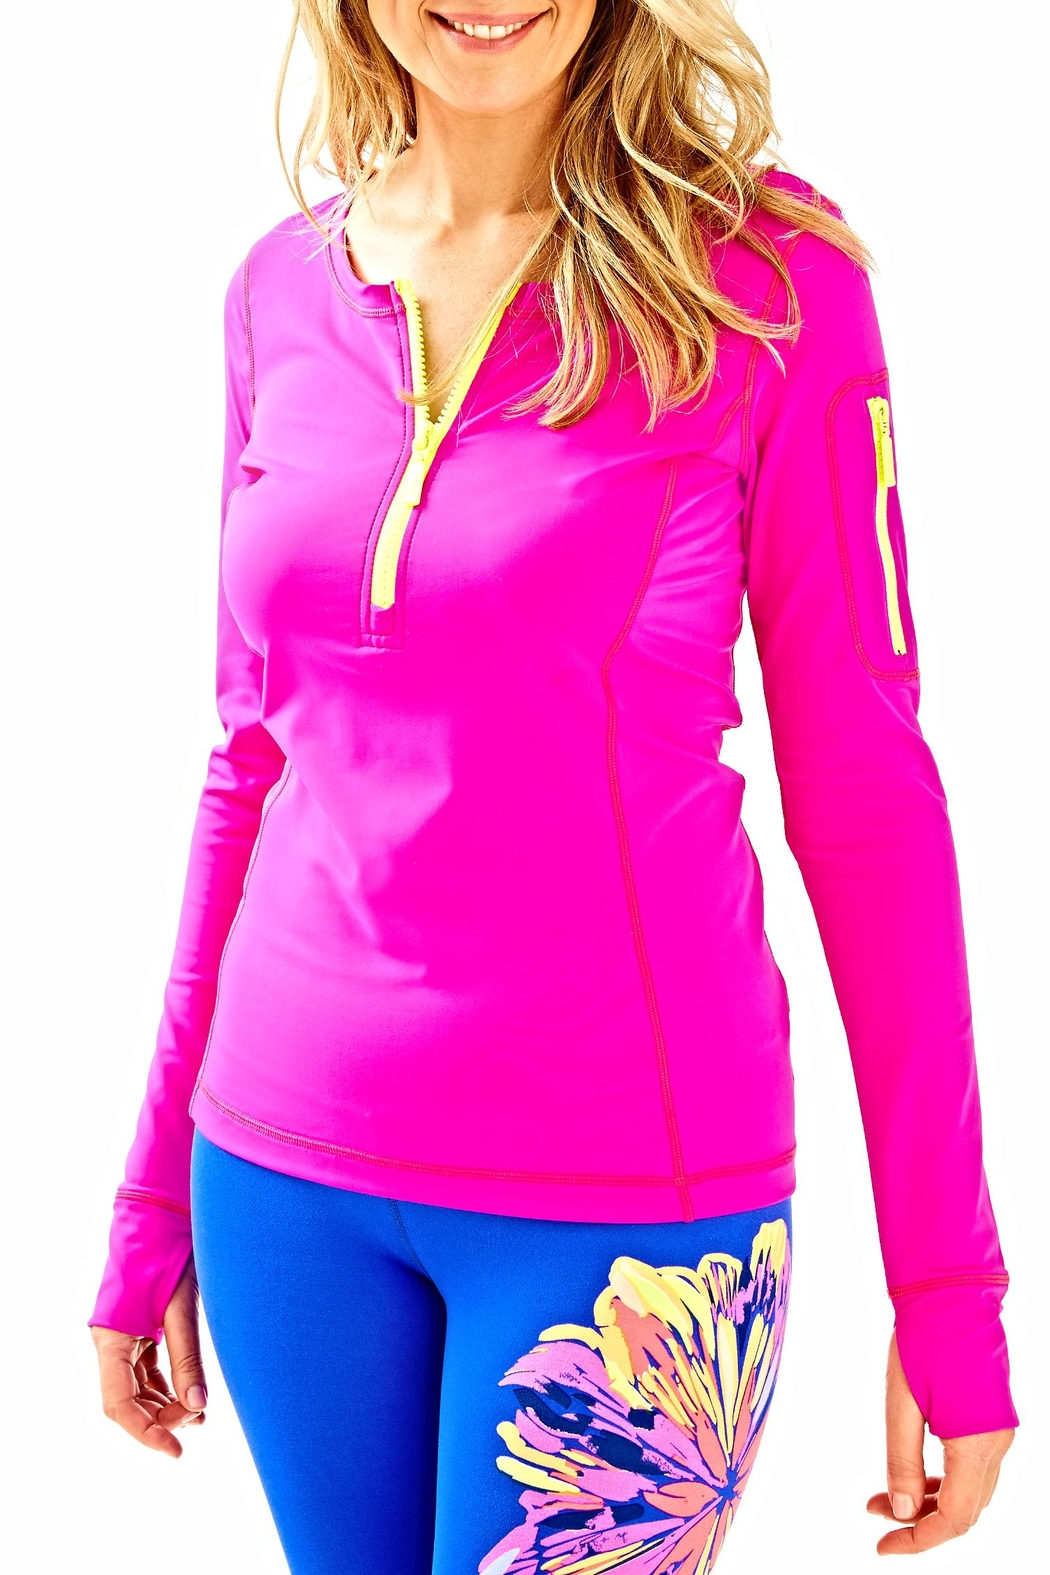 Lilly Pulitzer Luxletic Kona Sunguard Top - Main Image